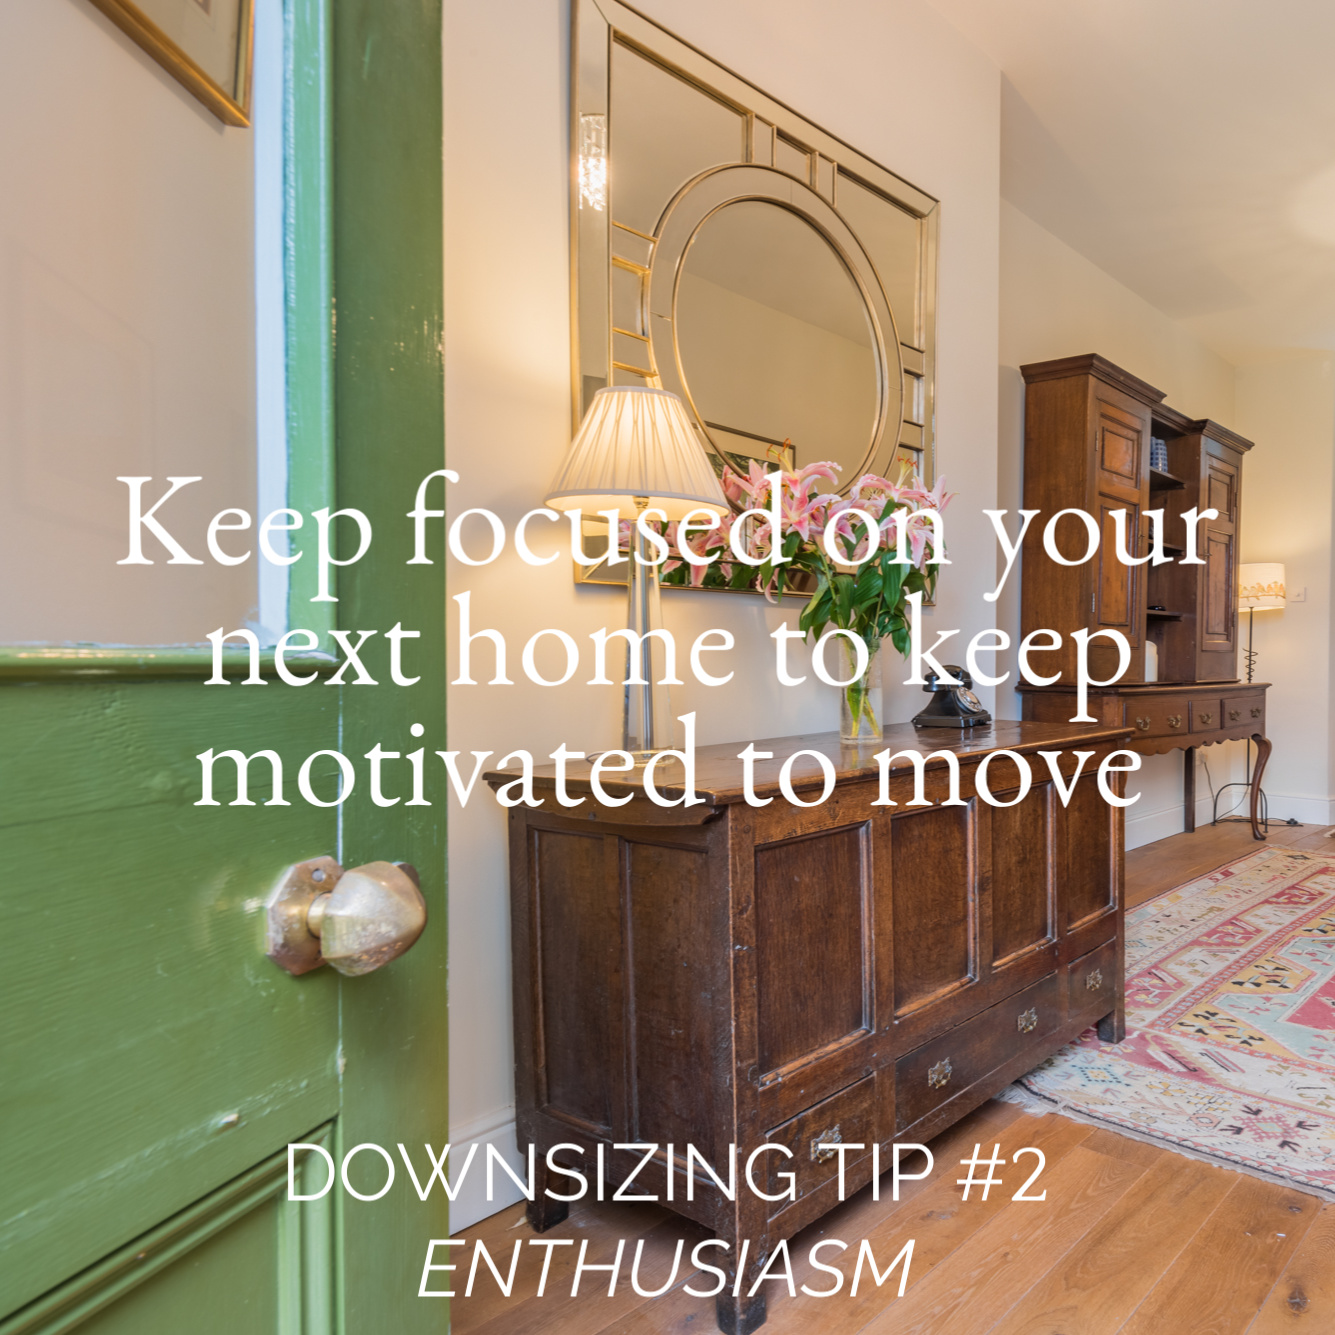 tg2-keep-focused-on-your-next-home